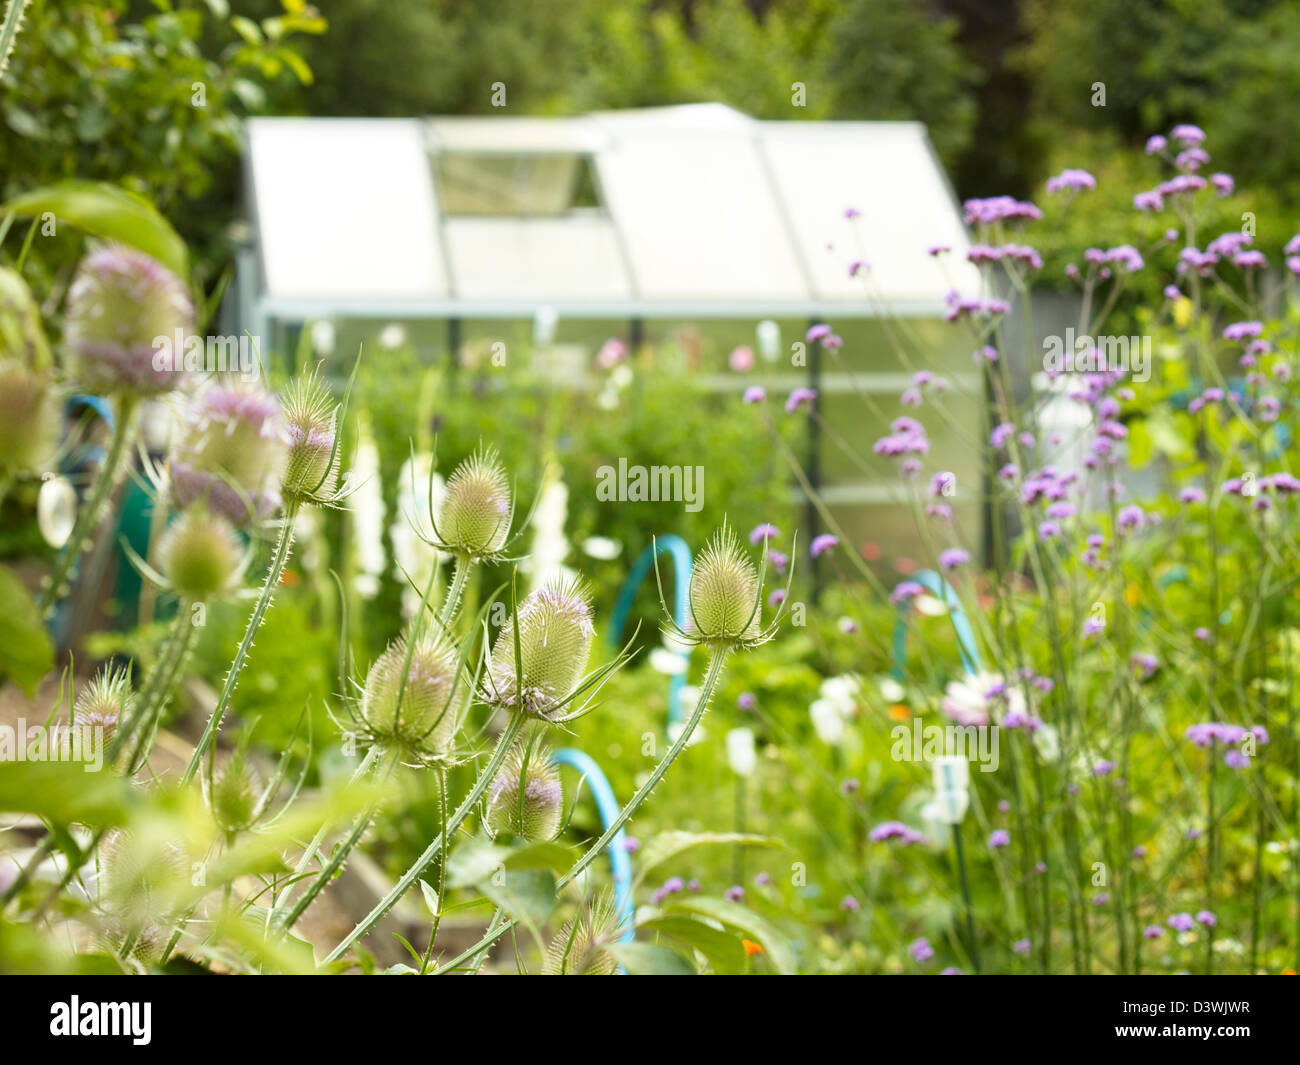 Allotment greenhouse - Stock Image